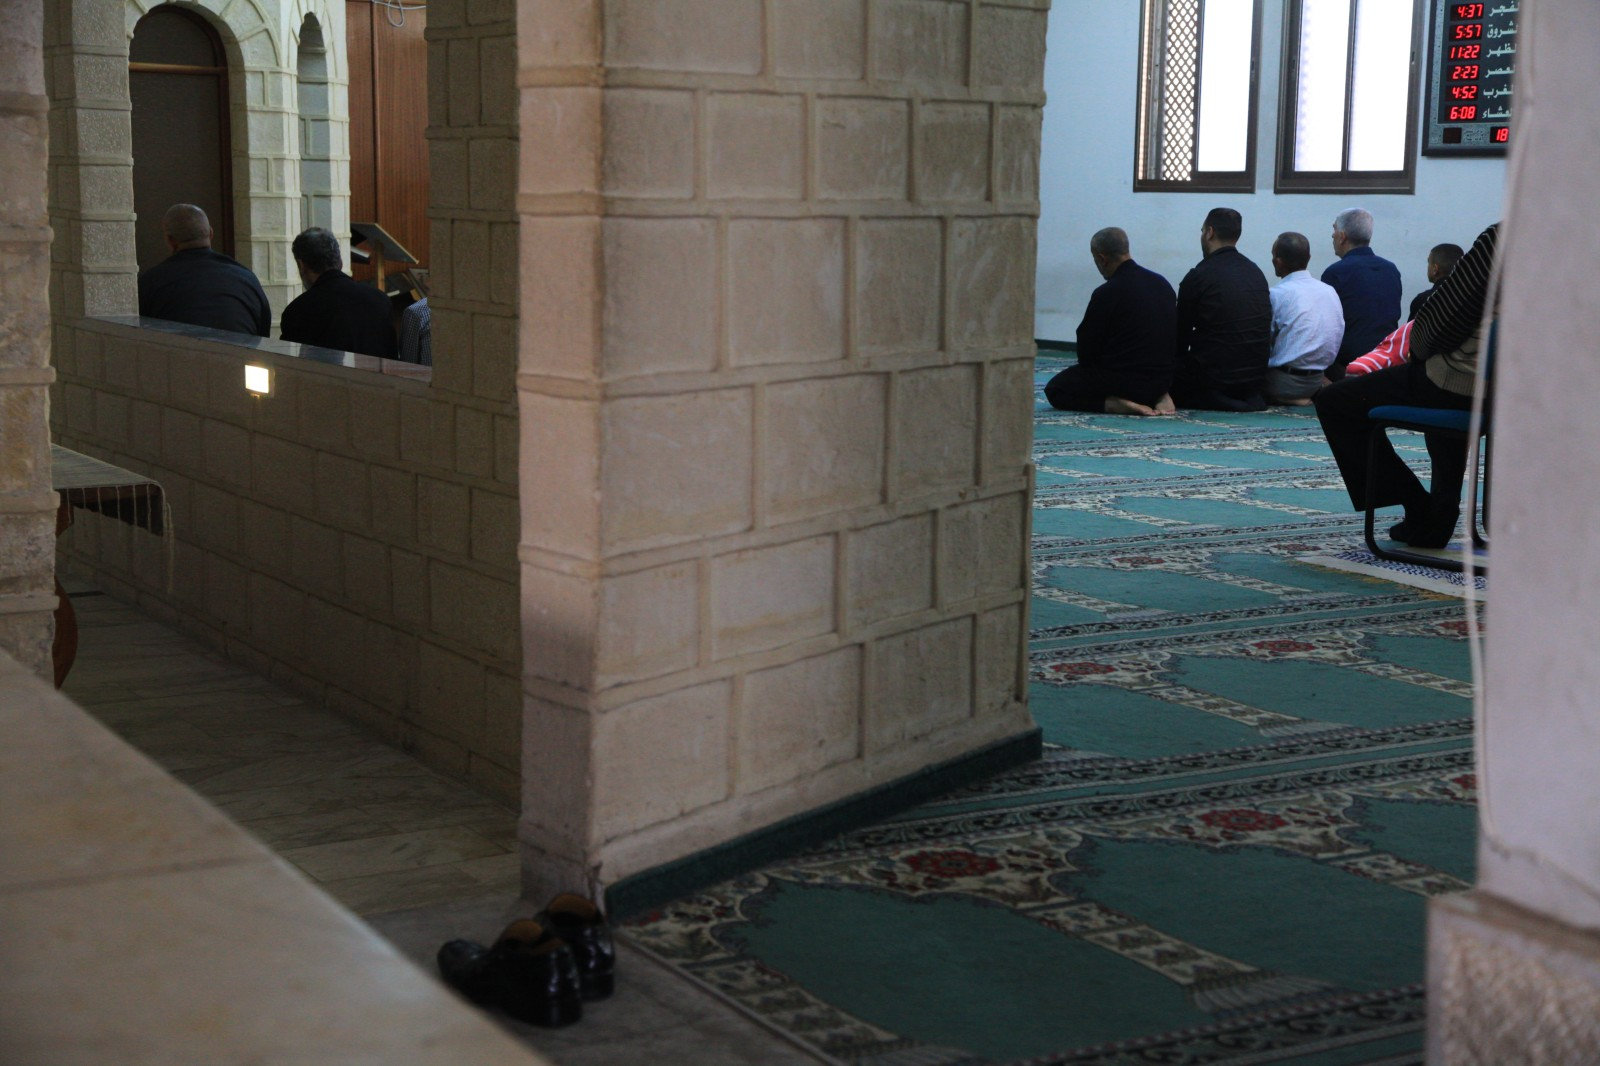 Inside of the White Mosque, I wonder what these numbers on the wall mean